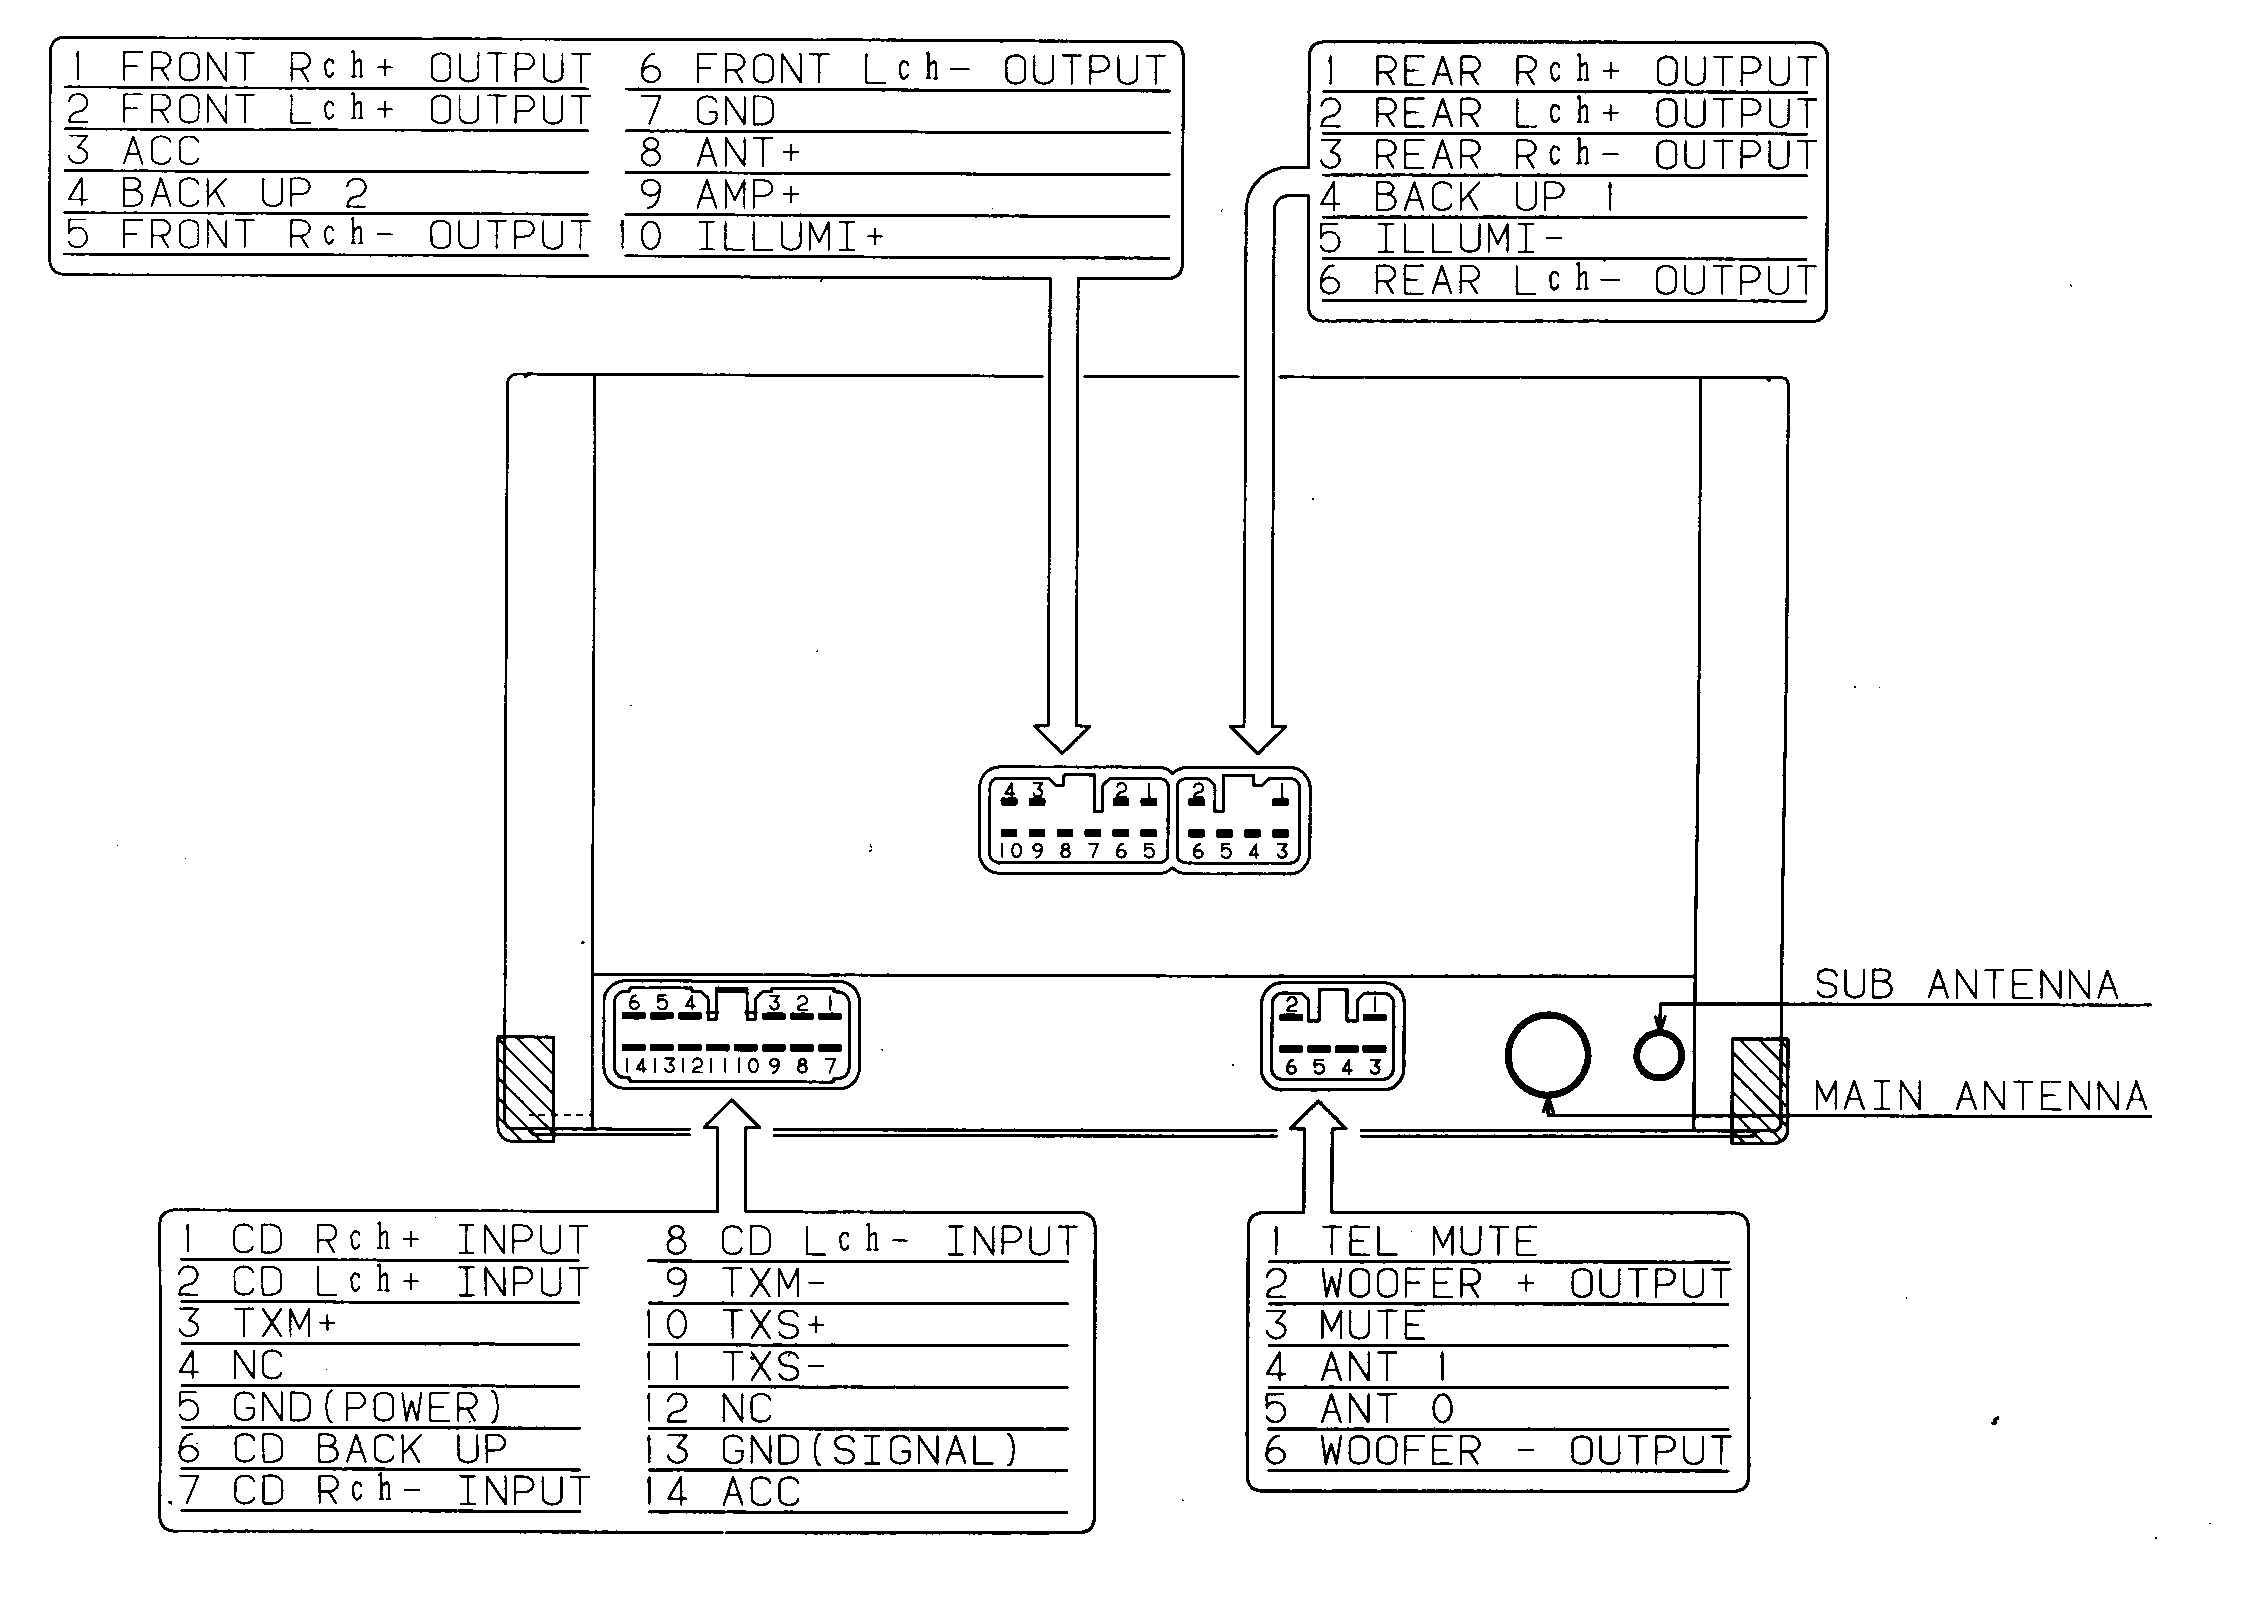 Lexus car stereo wiring diagram harness pinout connector wire daihatsu ej ve ecu wiring diagram volkswagen wiring diagram kenwood dpx791bh wiring diagram at soozxer.org